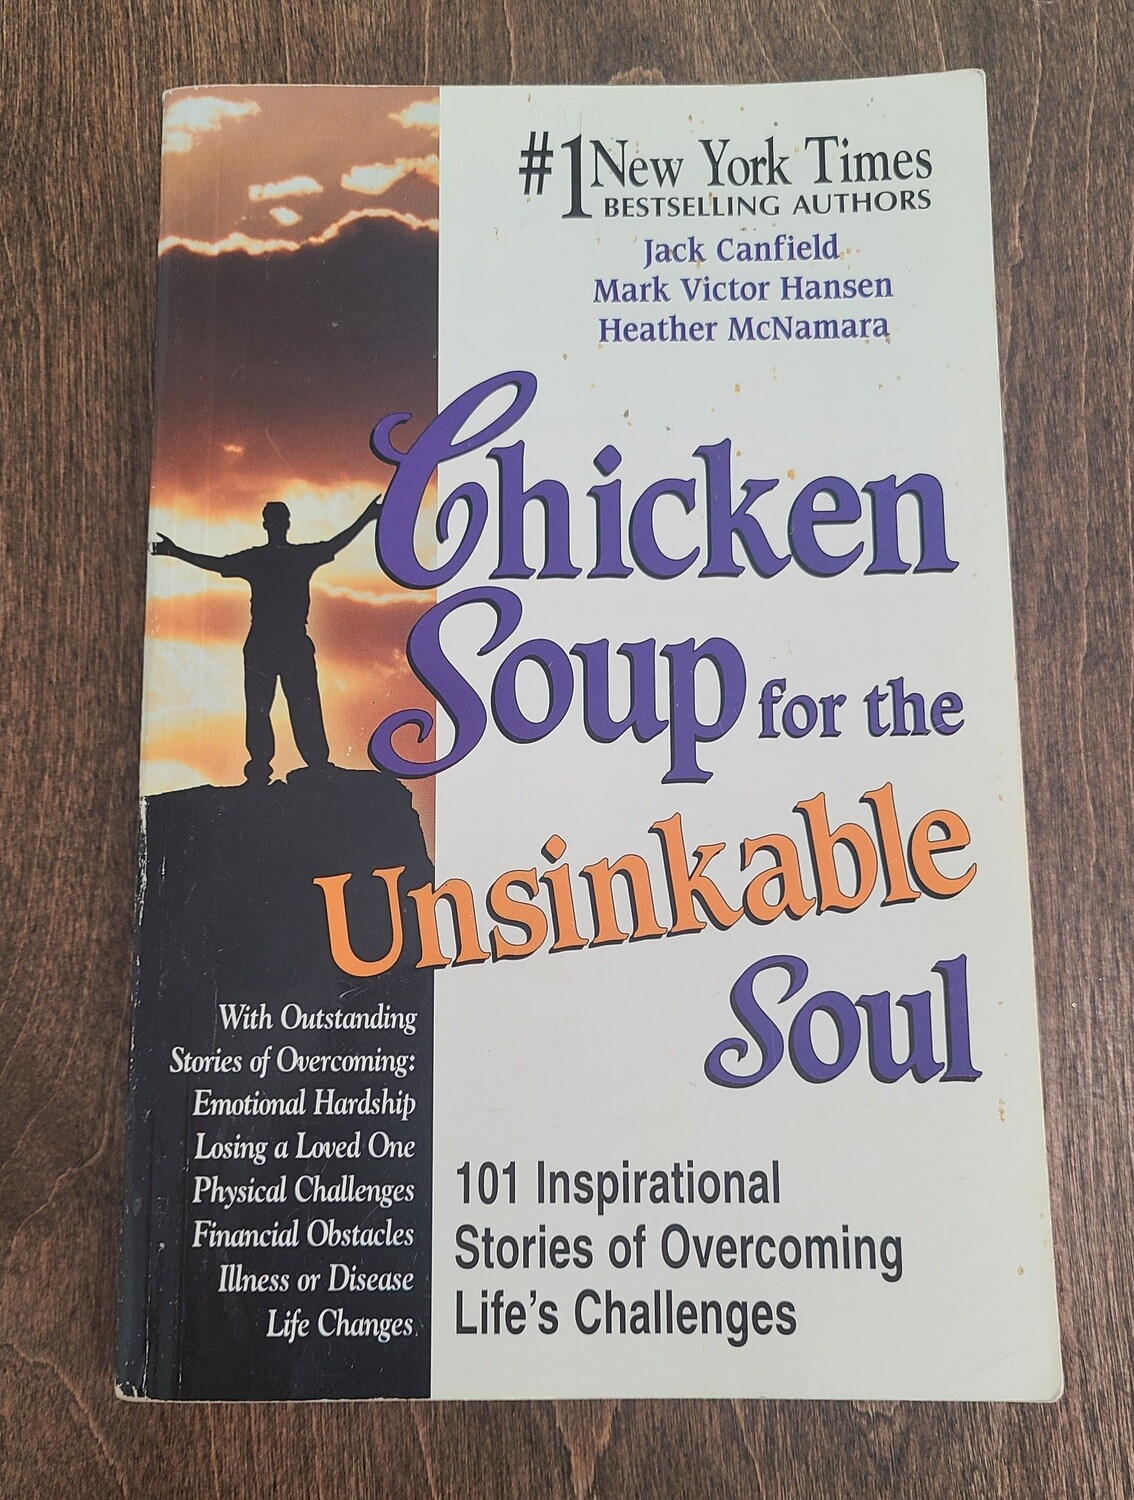 Chicken Soup for the Unsinkable Soul by Jack Canfield, Mark Victor Hansen, and Heather McNamara